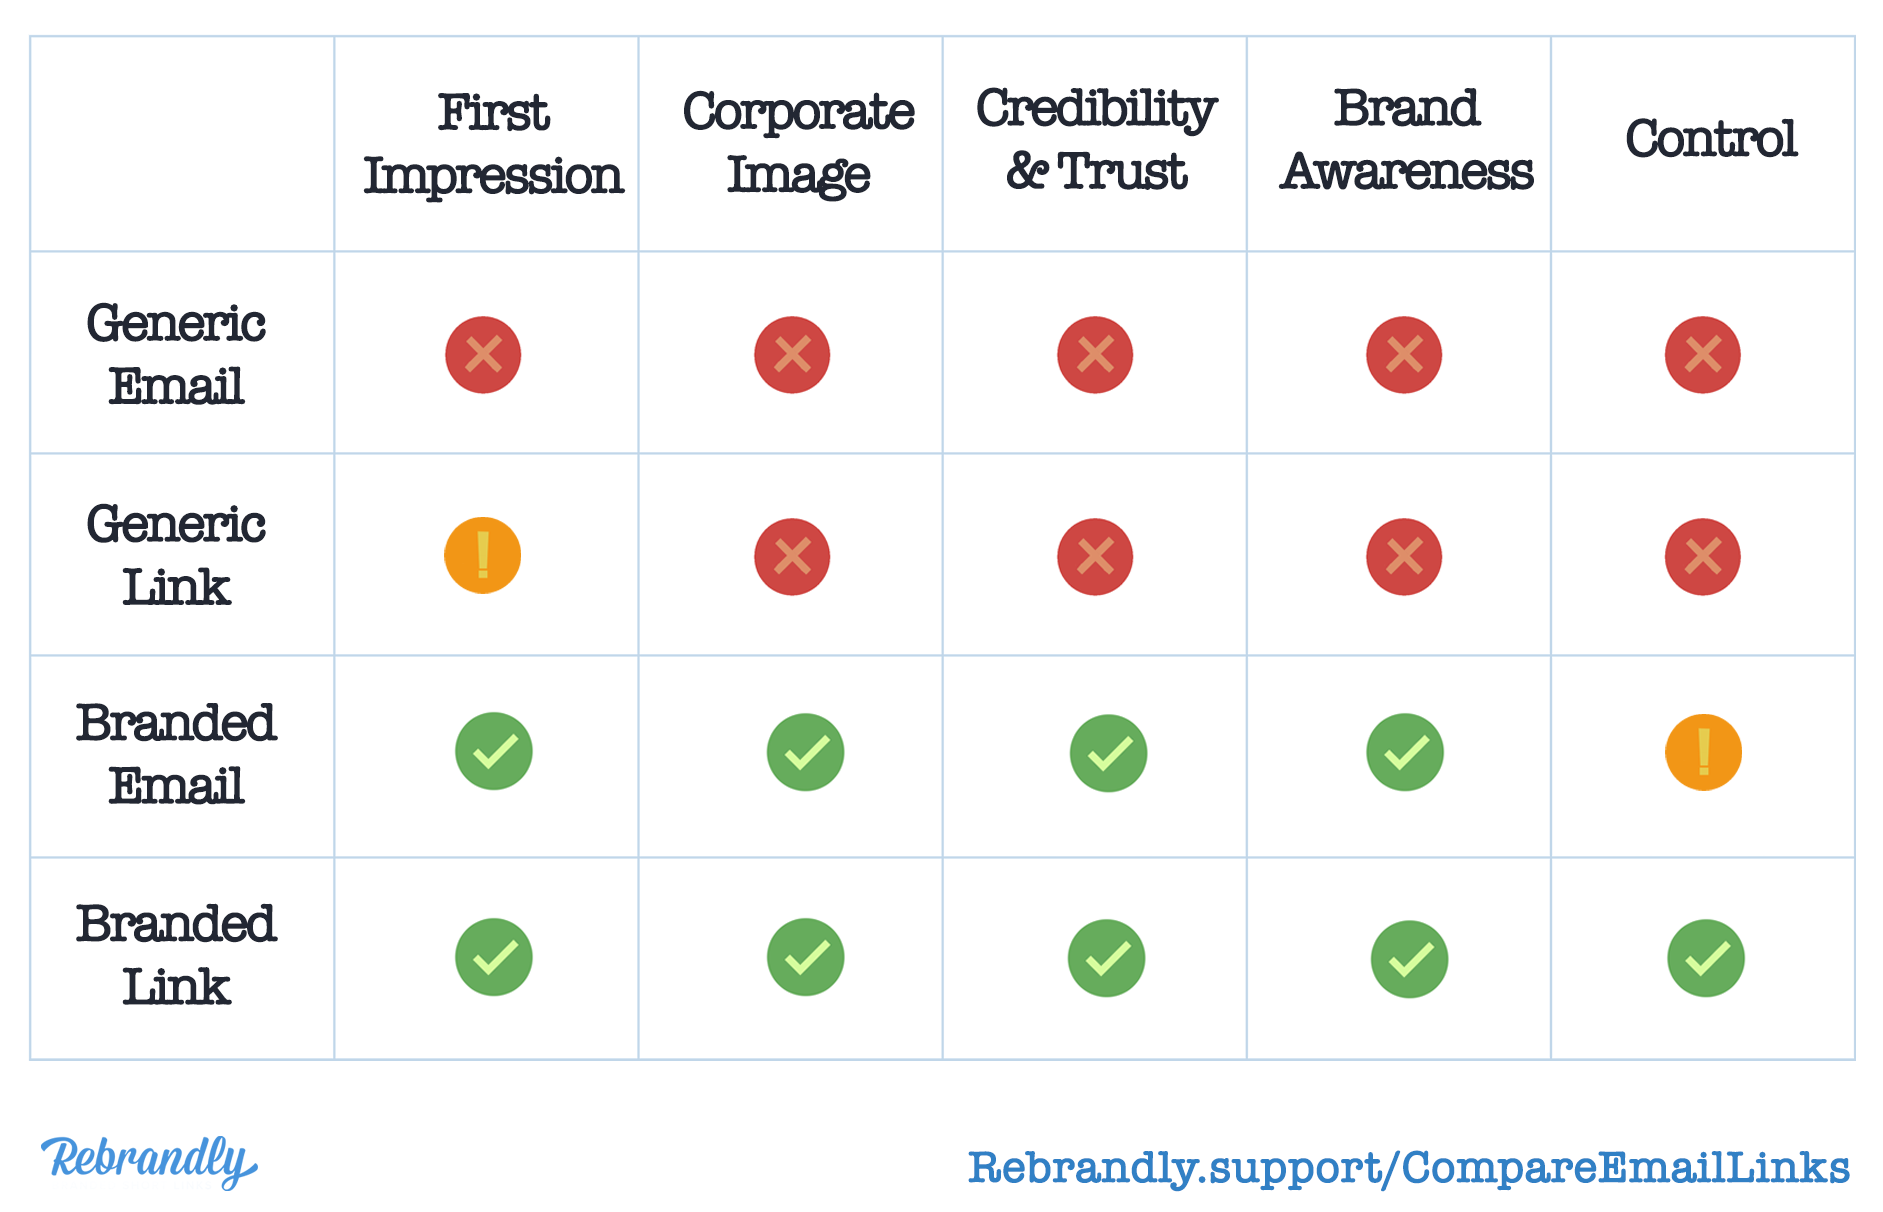 Business-Email-Branded-Links-Comparison-Infographic_2.png